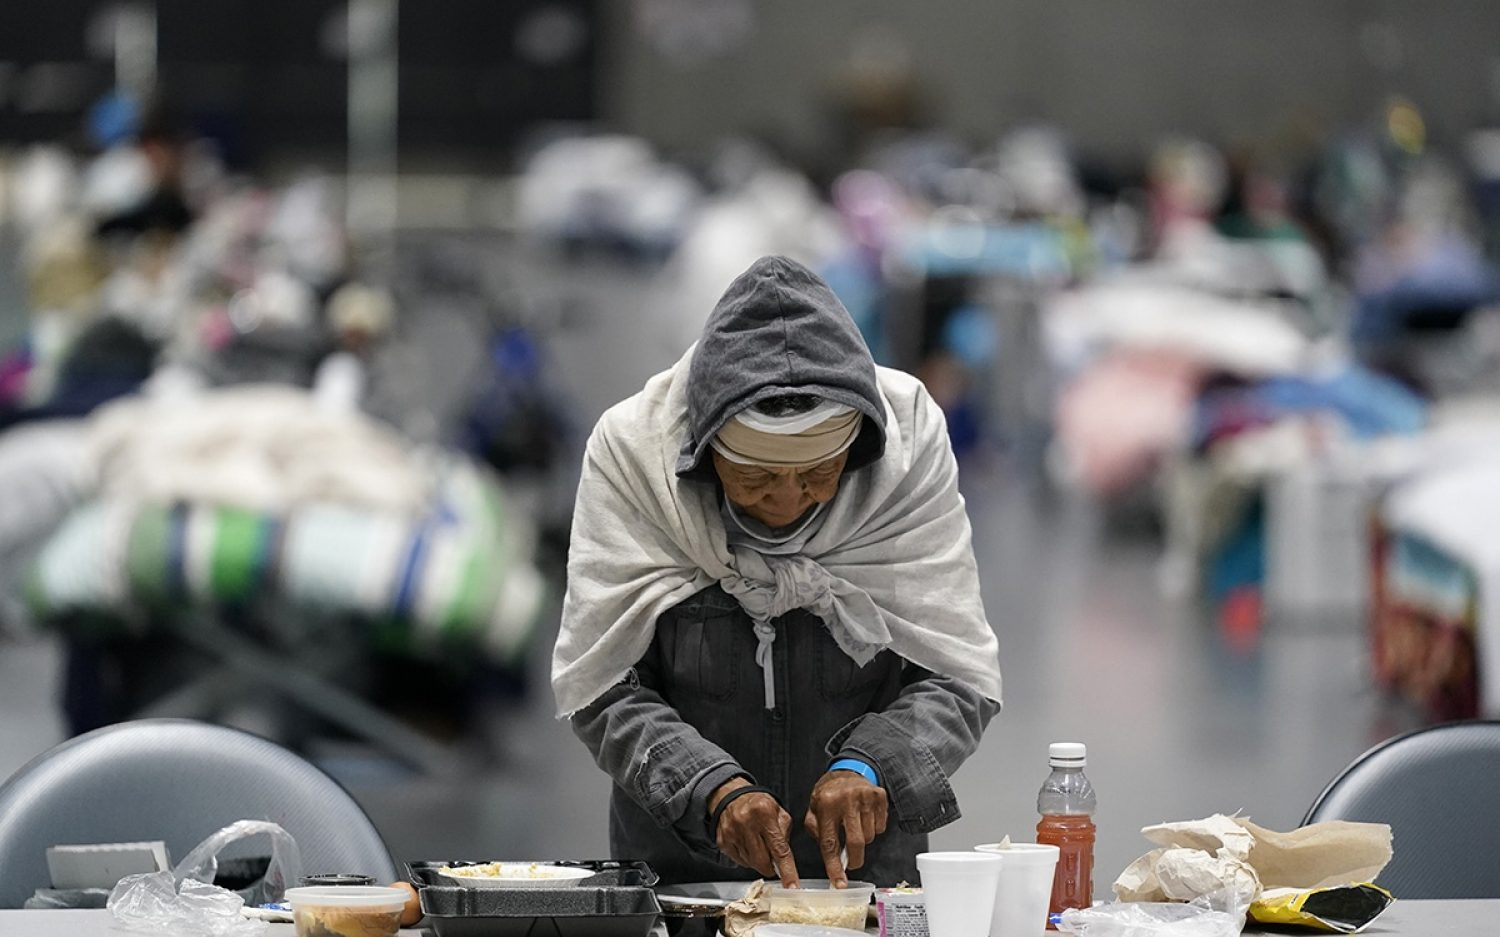 The poor in a pandemic